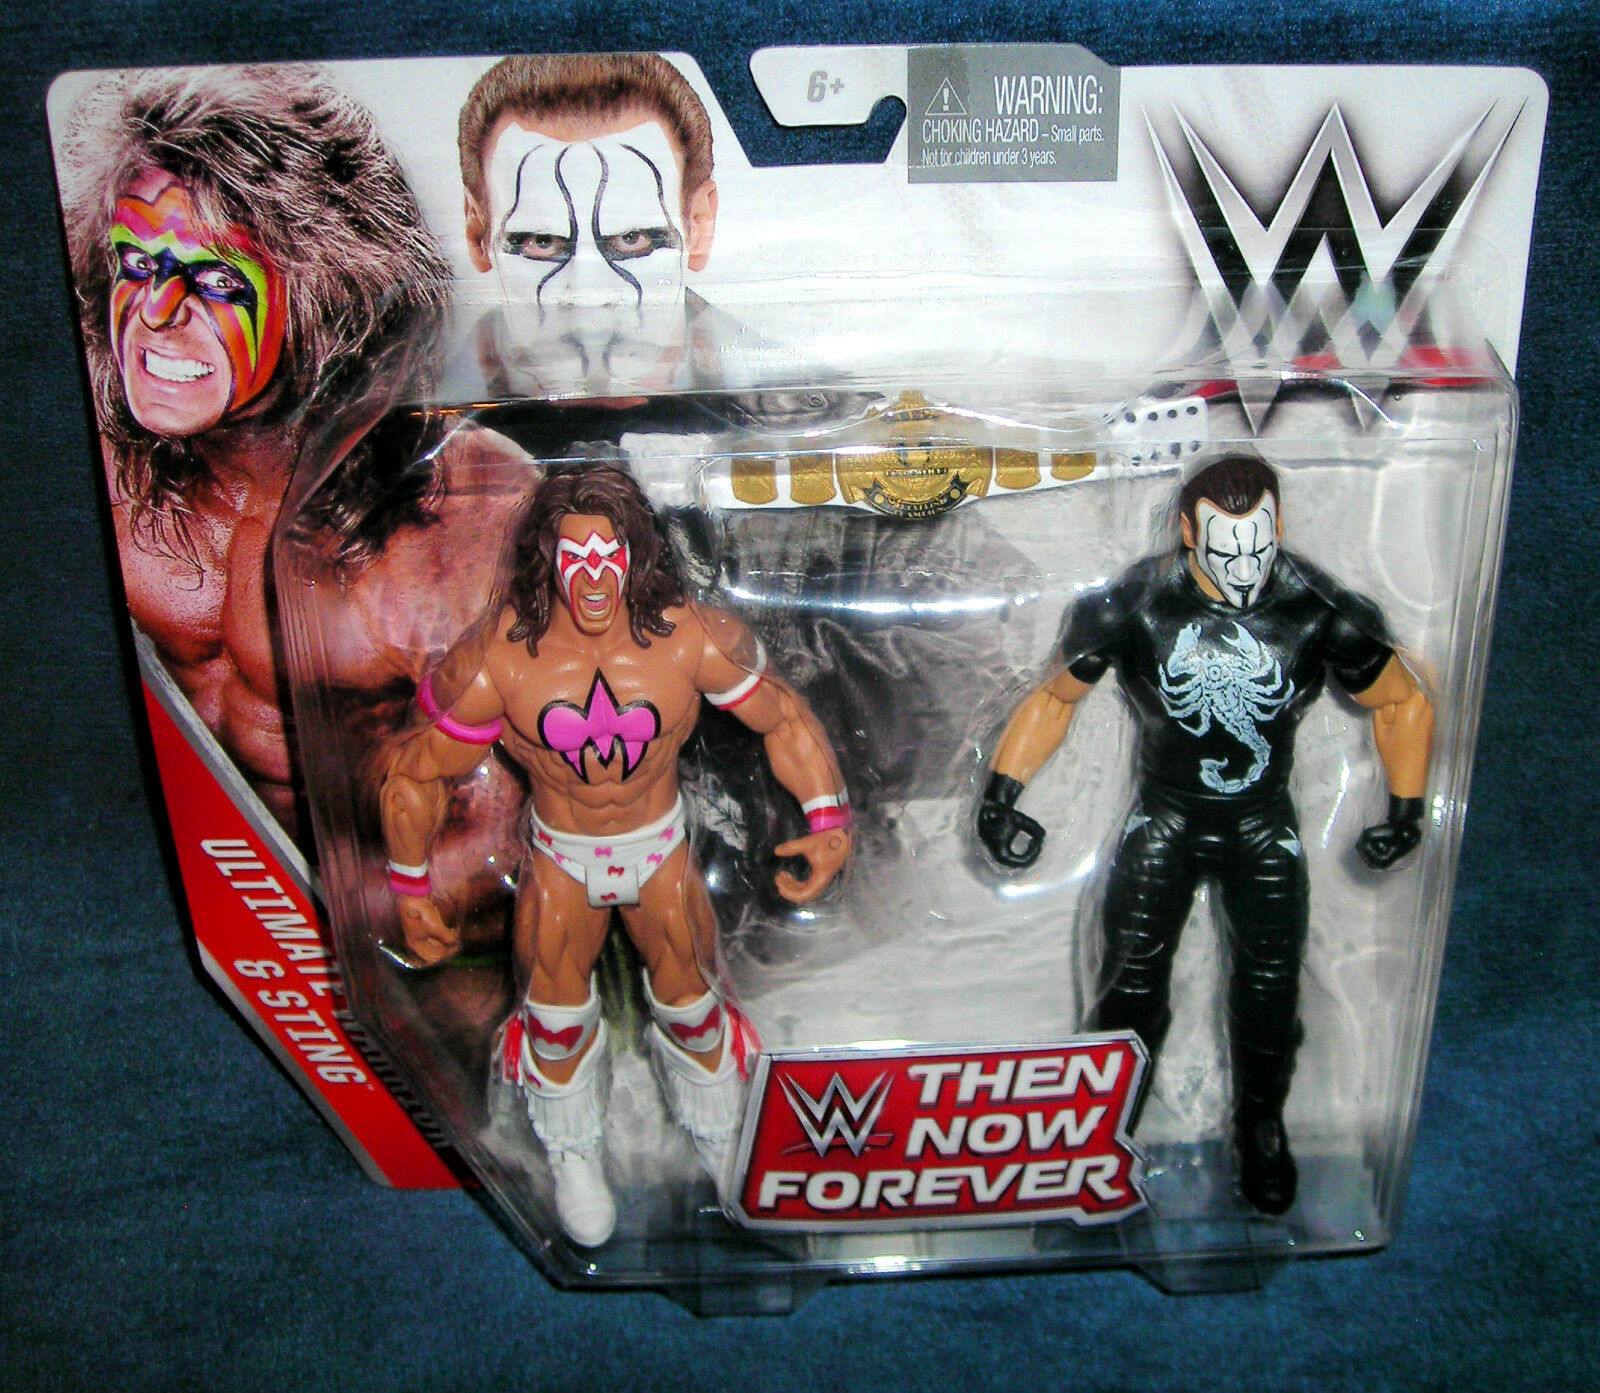 WWE ULTIMATE WARRIOR STING CHAMPIONSHIP BELT RAW WRESTLEMANIA THEN NOW FOREVER